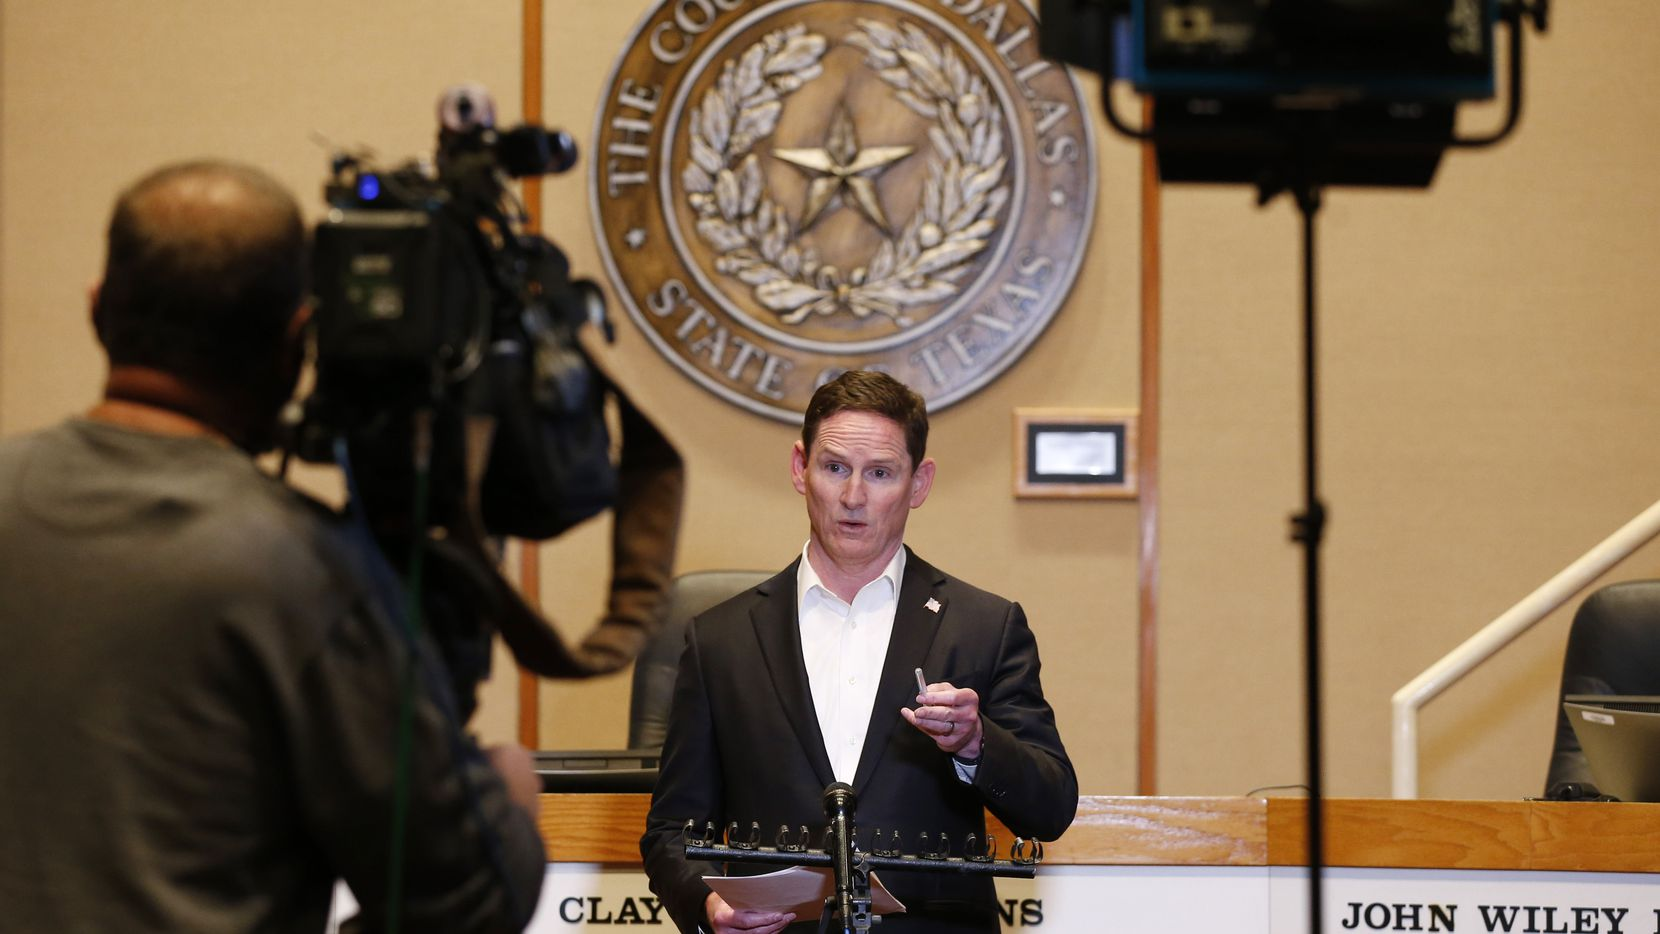 Dallas County Judge Clay Jenkins speak during a press conference updating an amended order for the COVID-19 response at the Dallas County Administration Building in Dallas on Saturday, March 21, 2020. (Vernon Bryant/The Dallas Morning News)